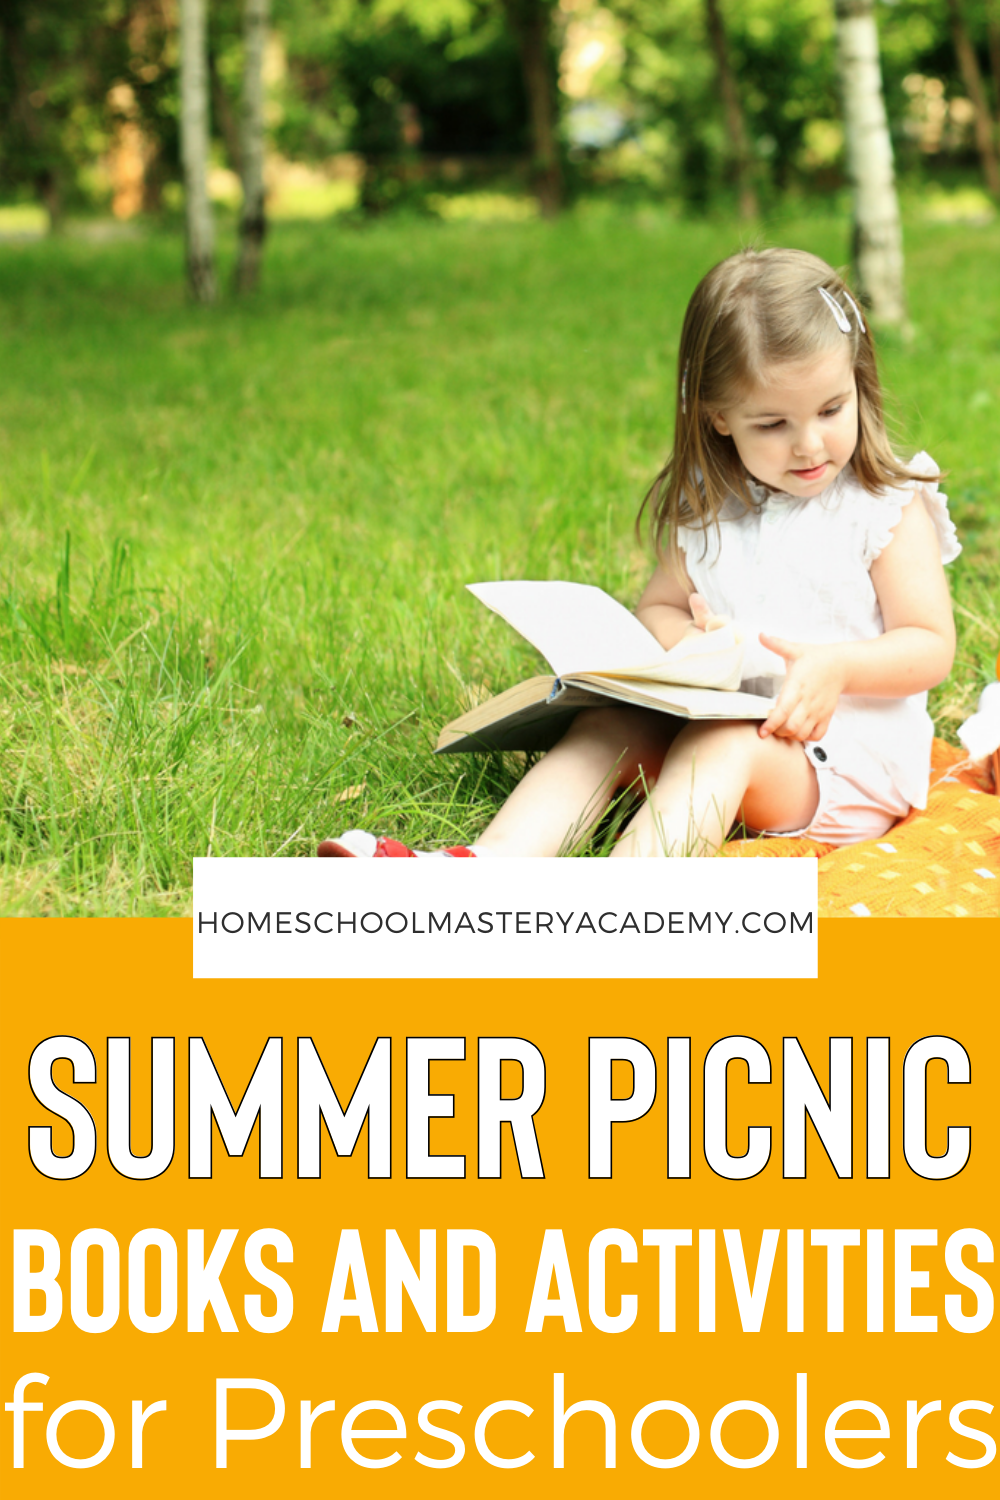 Enjoy all types of books and activities surrounding a picnic theme for preschoolers! Introduce early learning math and reading concepts as well as fine motor skills and learning through play! #preschool #preschollthemes #prek #homeschoolprintables #homeschoolpreschool